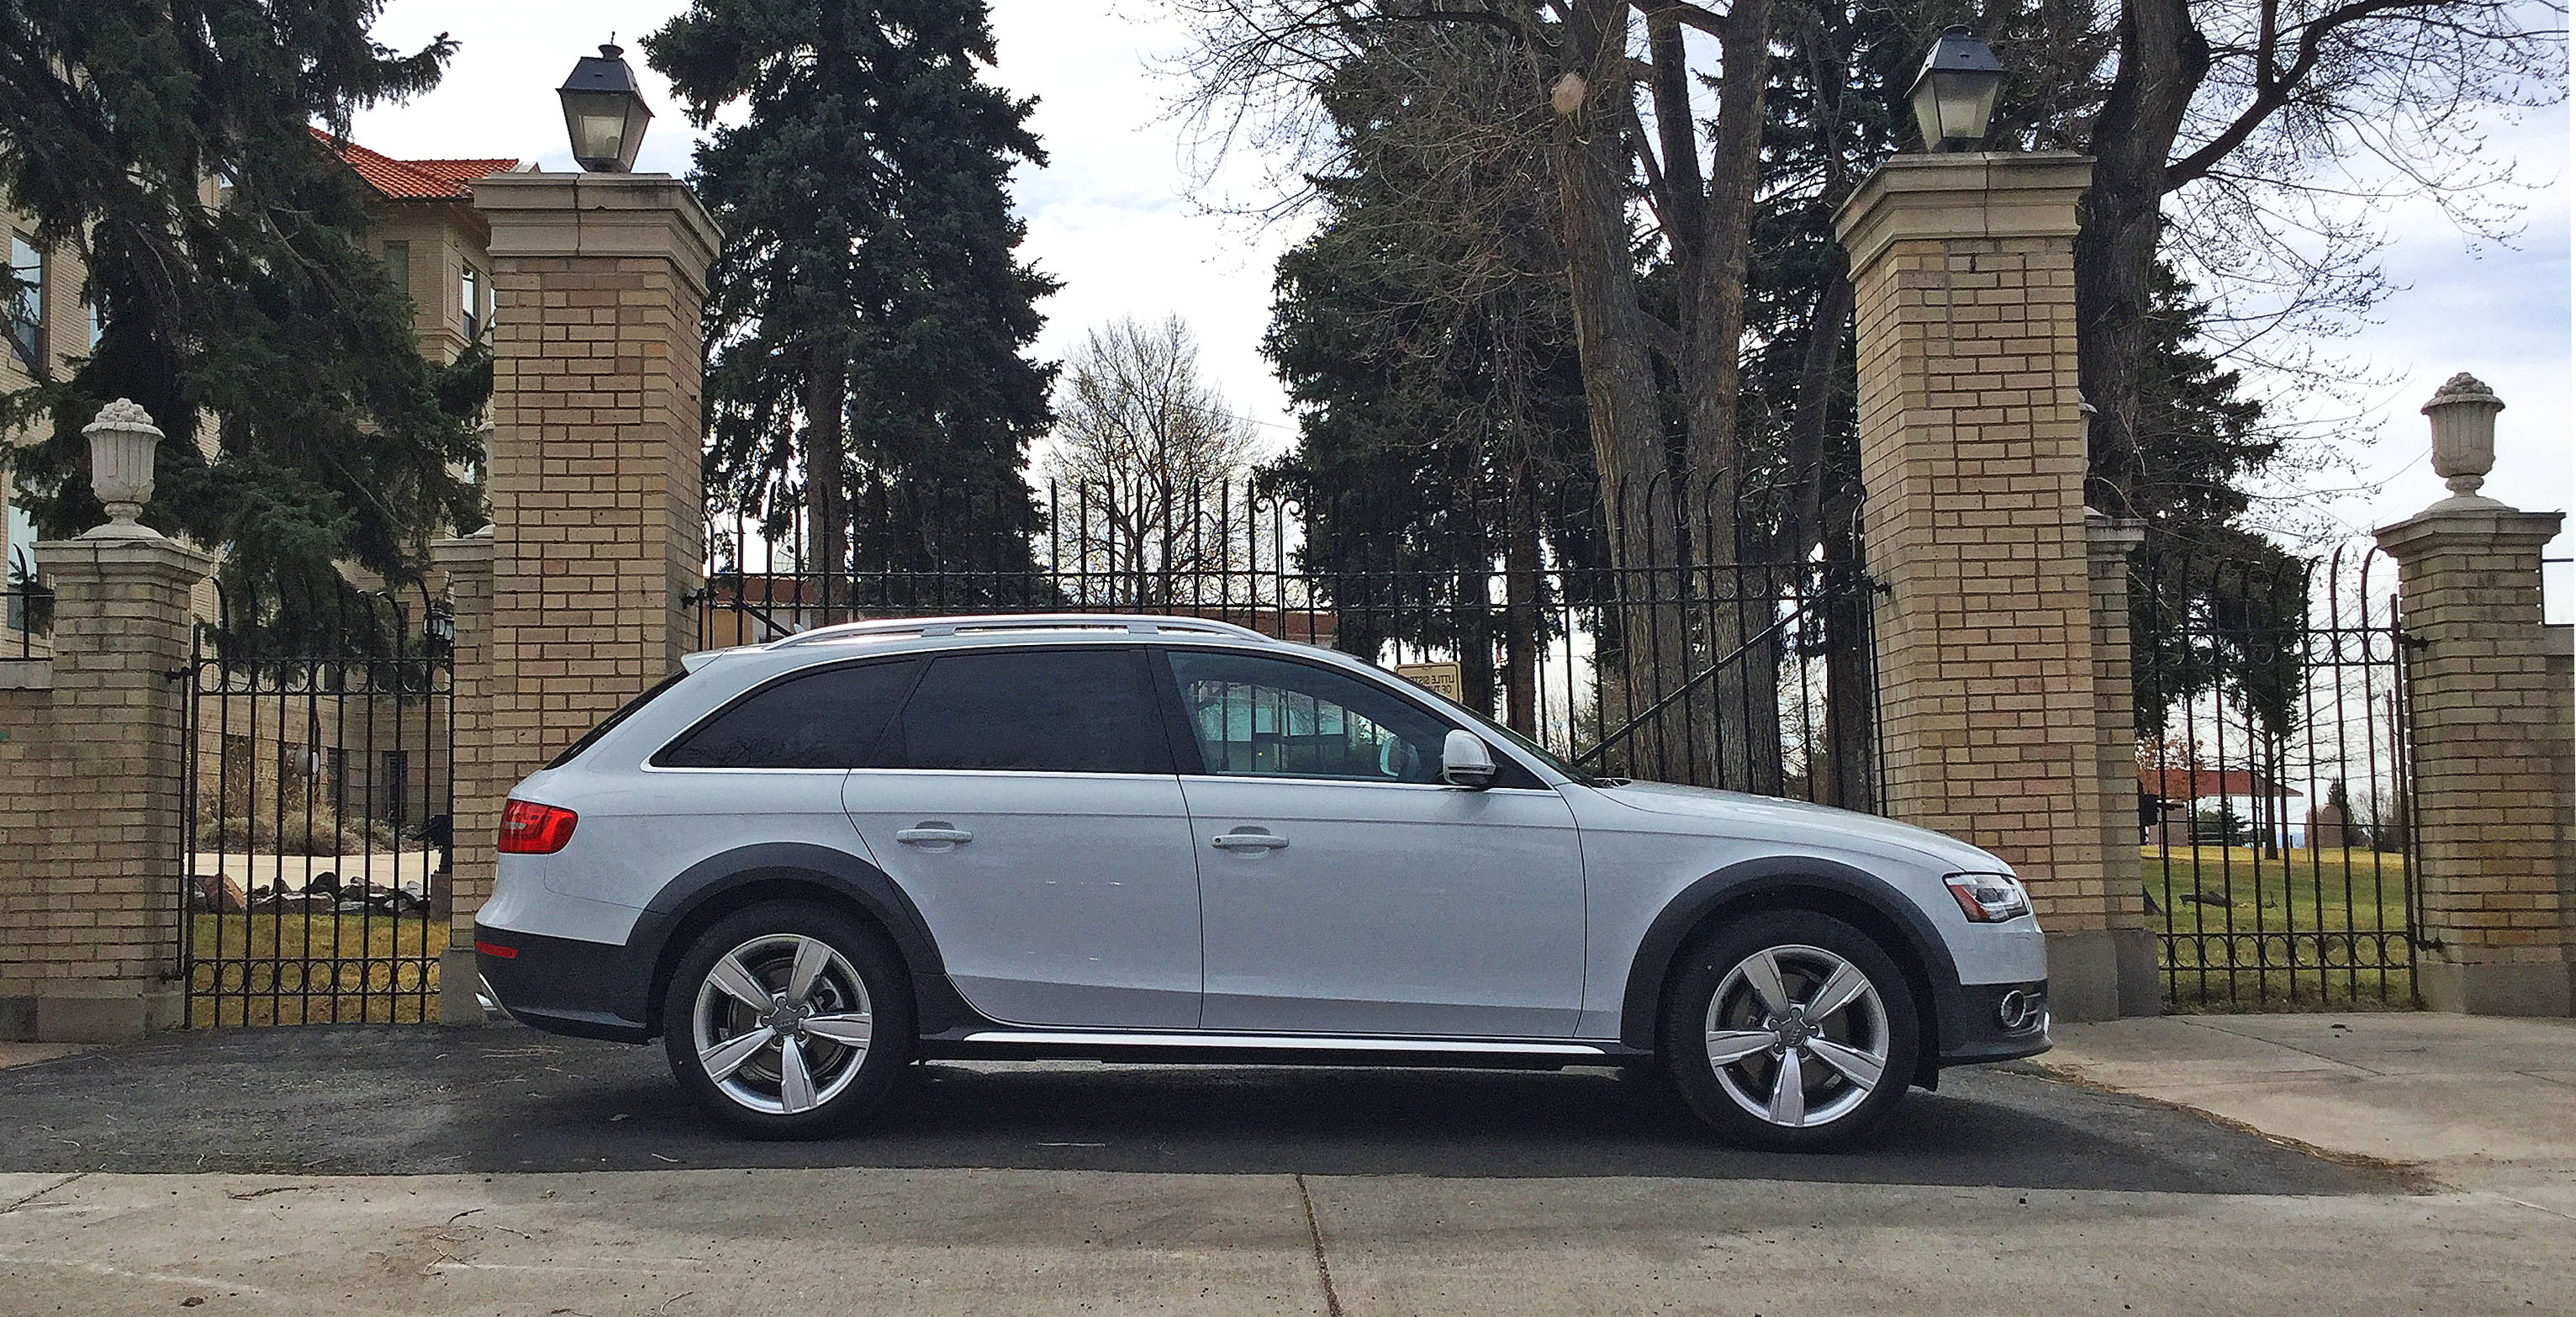 An Audi allroad parked in front of a gate in the Highland, Denver, CO